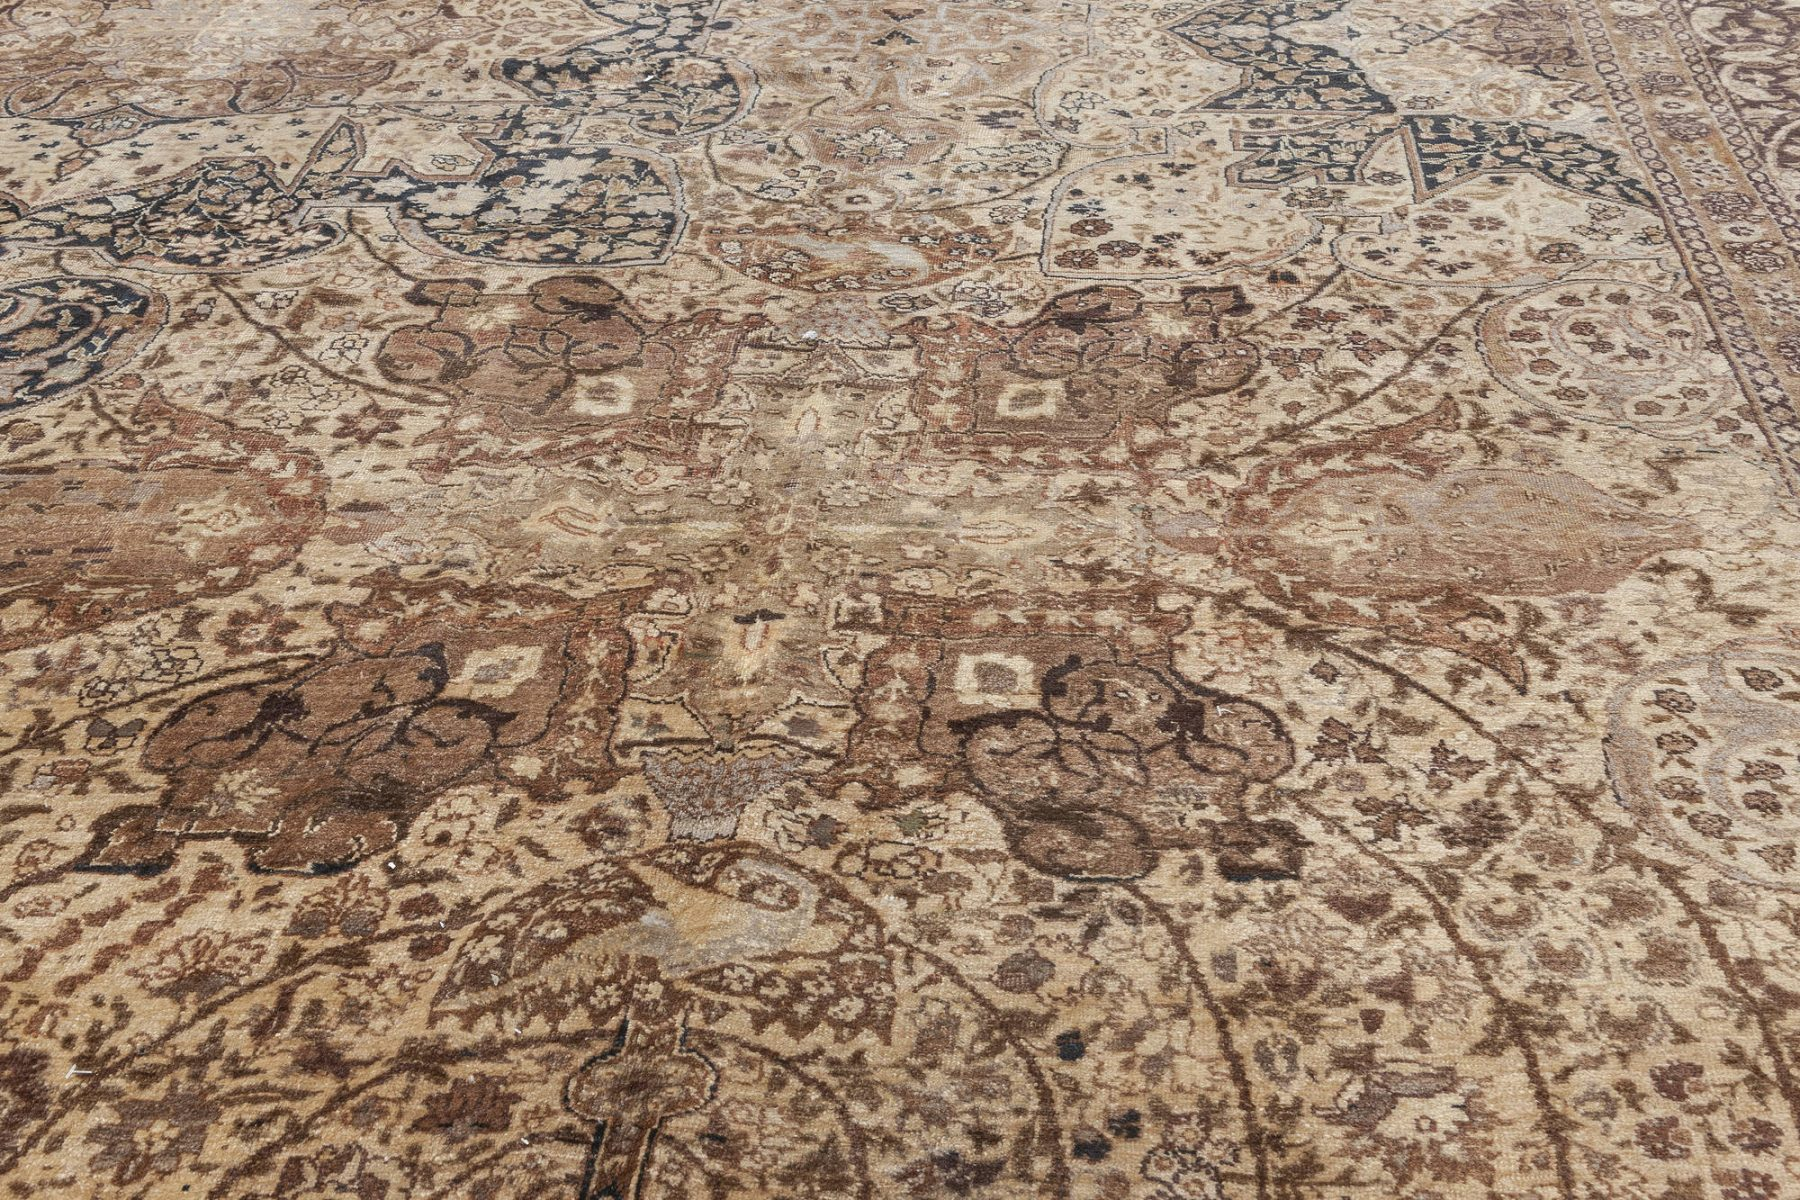 Antique Persian Tabriz Rug BB7035